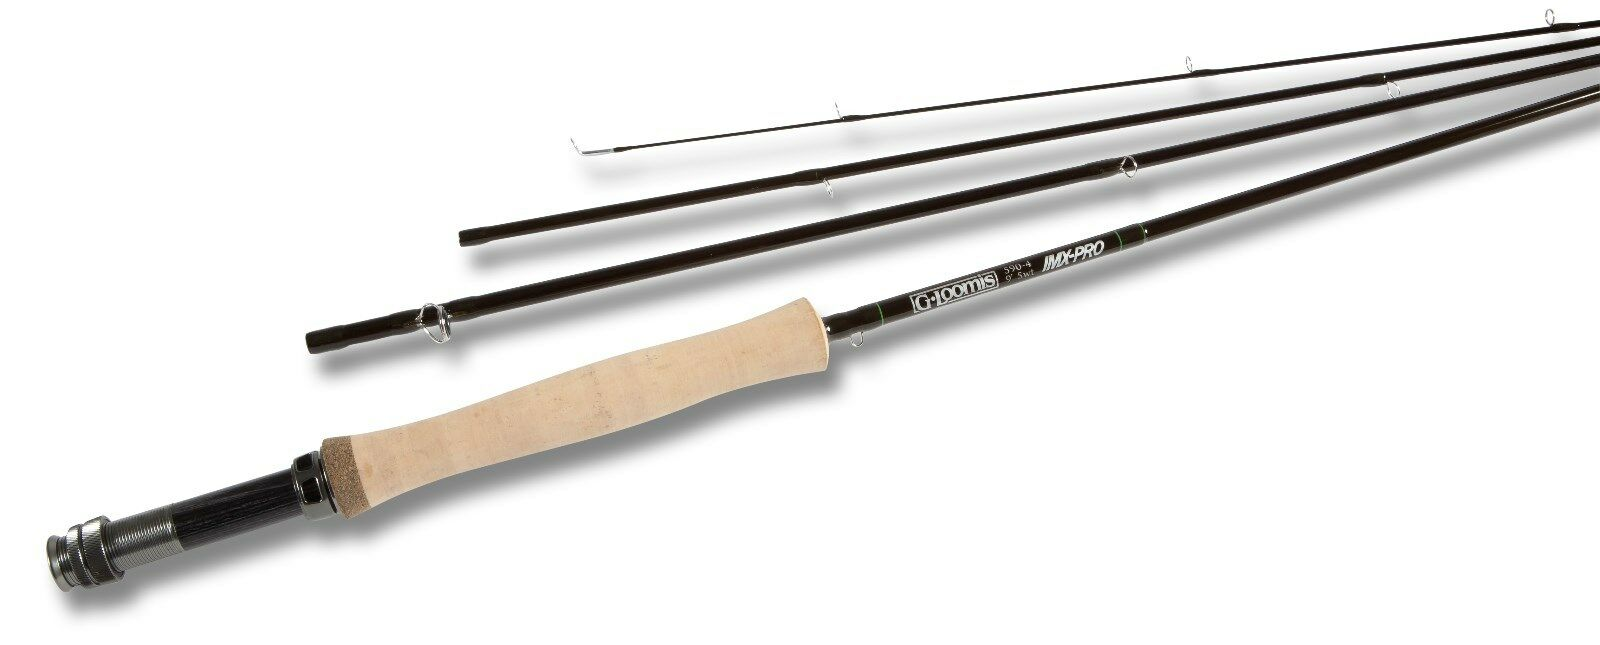 G.Loomis IMX-PRO Fly Rod 10' 5wt.   cheap designer brands